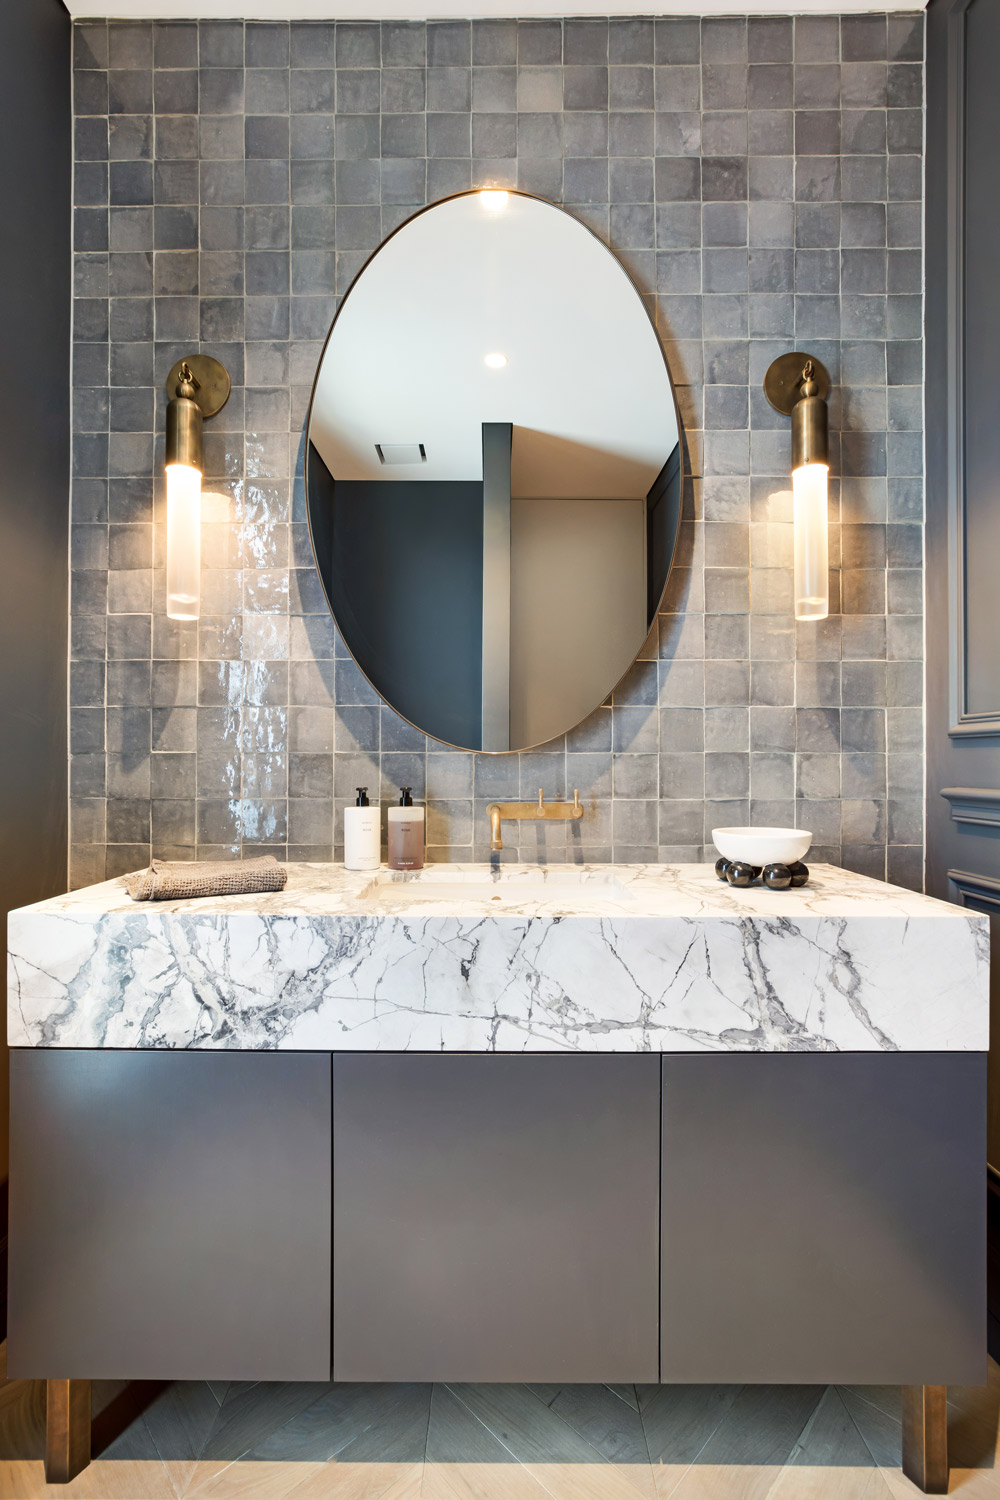 Sarah_Braden_Wolseley-Road-29a-Mosman-Bathroom-1_LR.jpg